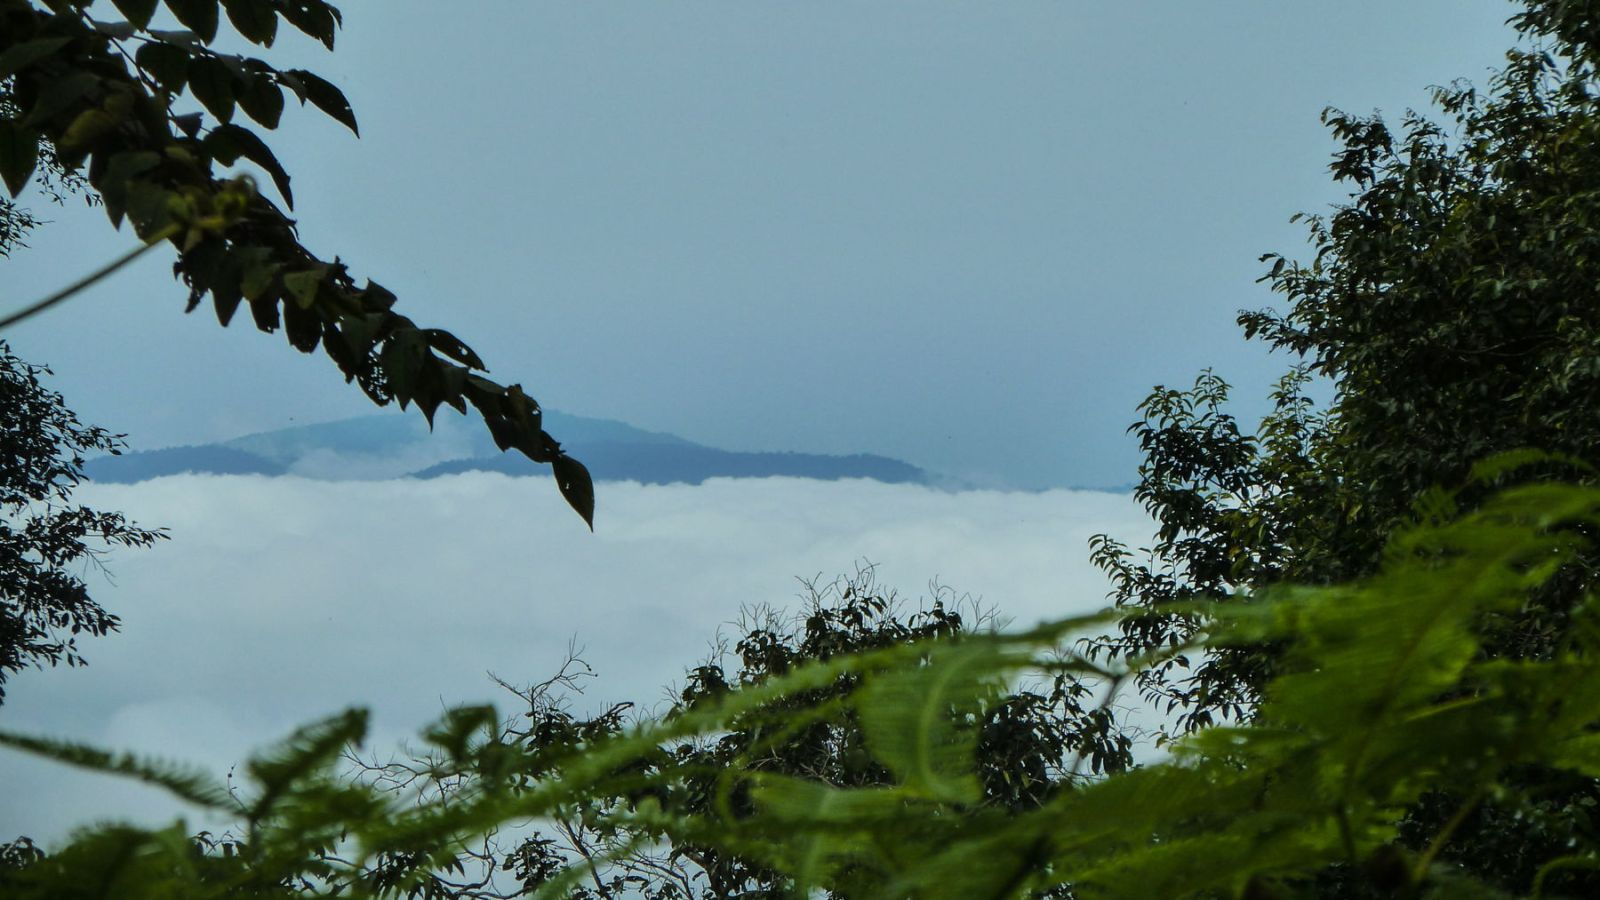 a photo from above the clouds in gunung leuser national park.